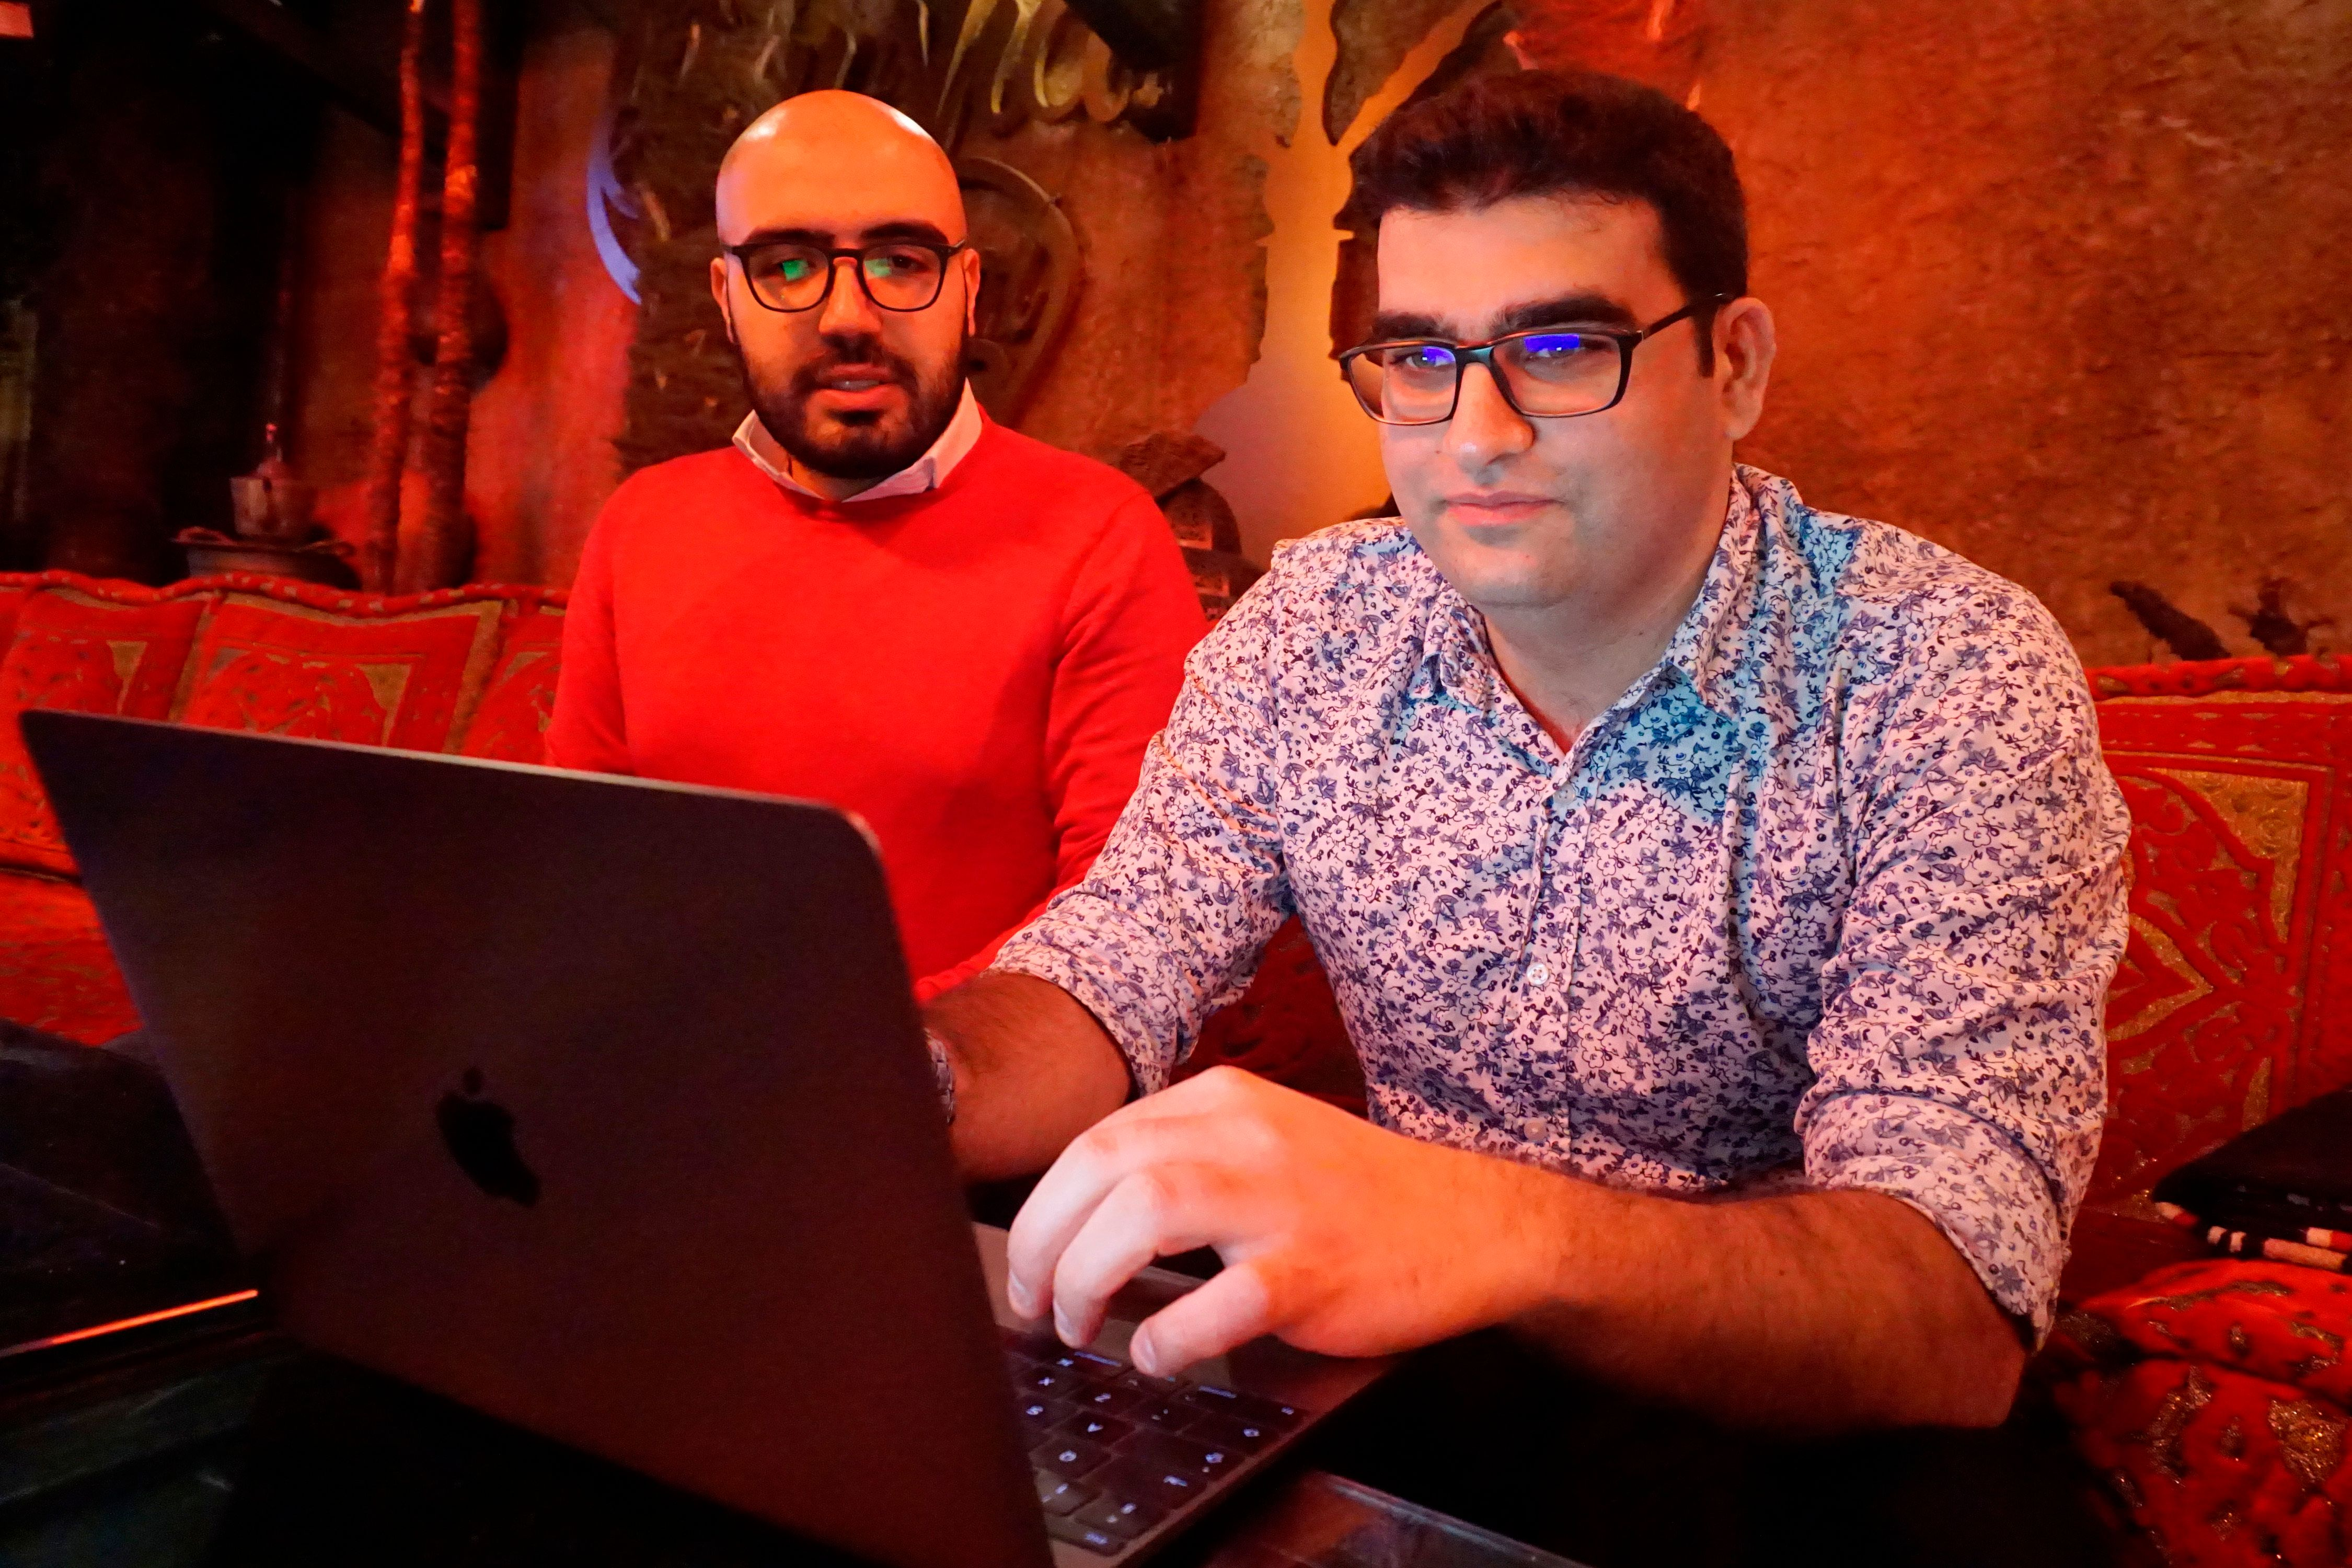 Certfa researchers Nariman Gharib, left, and Amin Sabeti, shown at a cafe in London on Dec. 7, 2018. Certfa helped uncover th